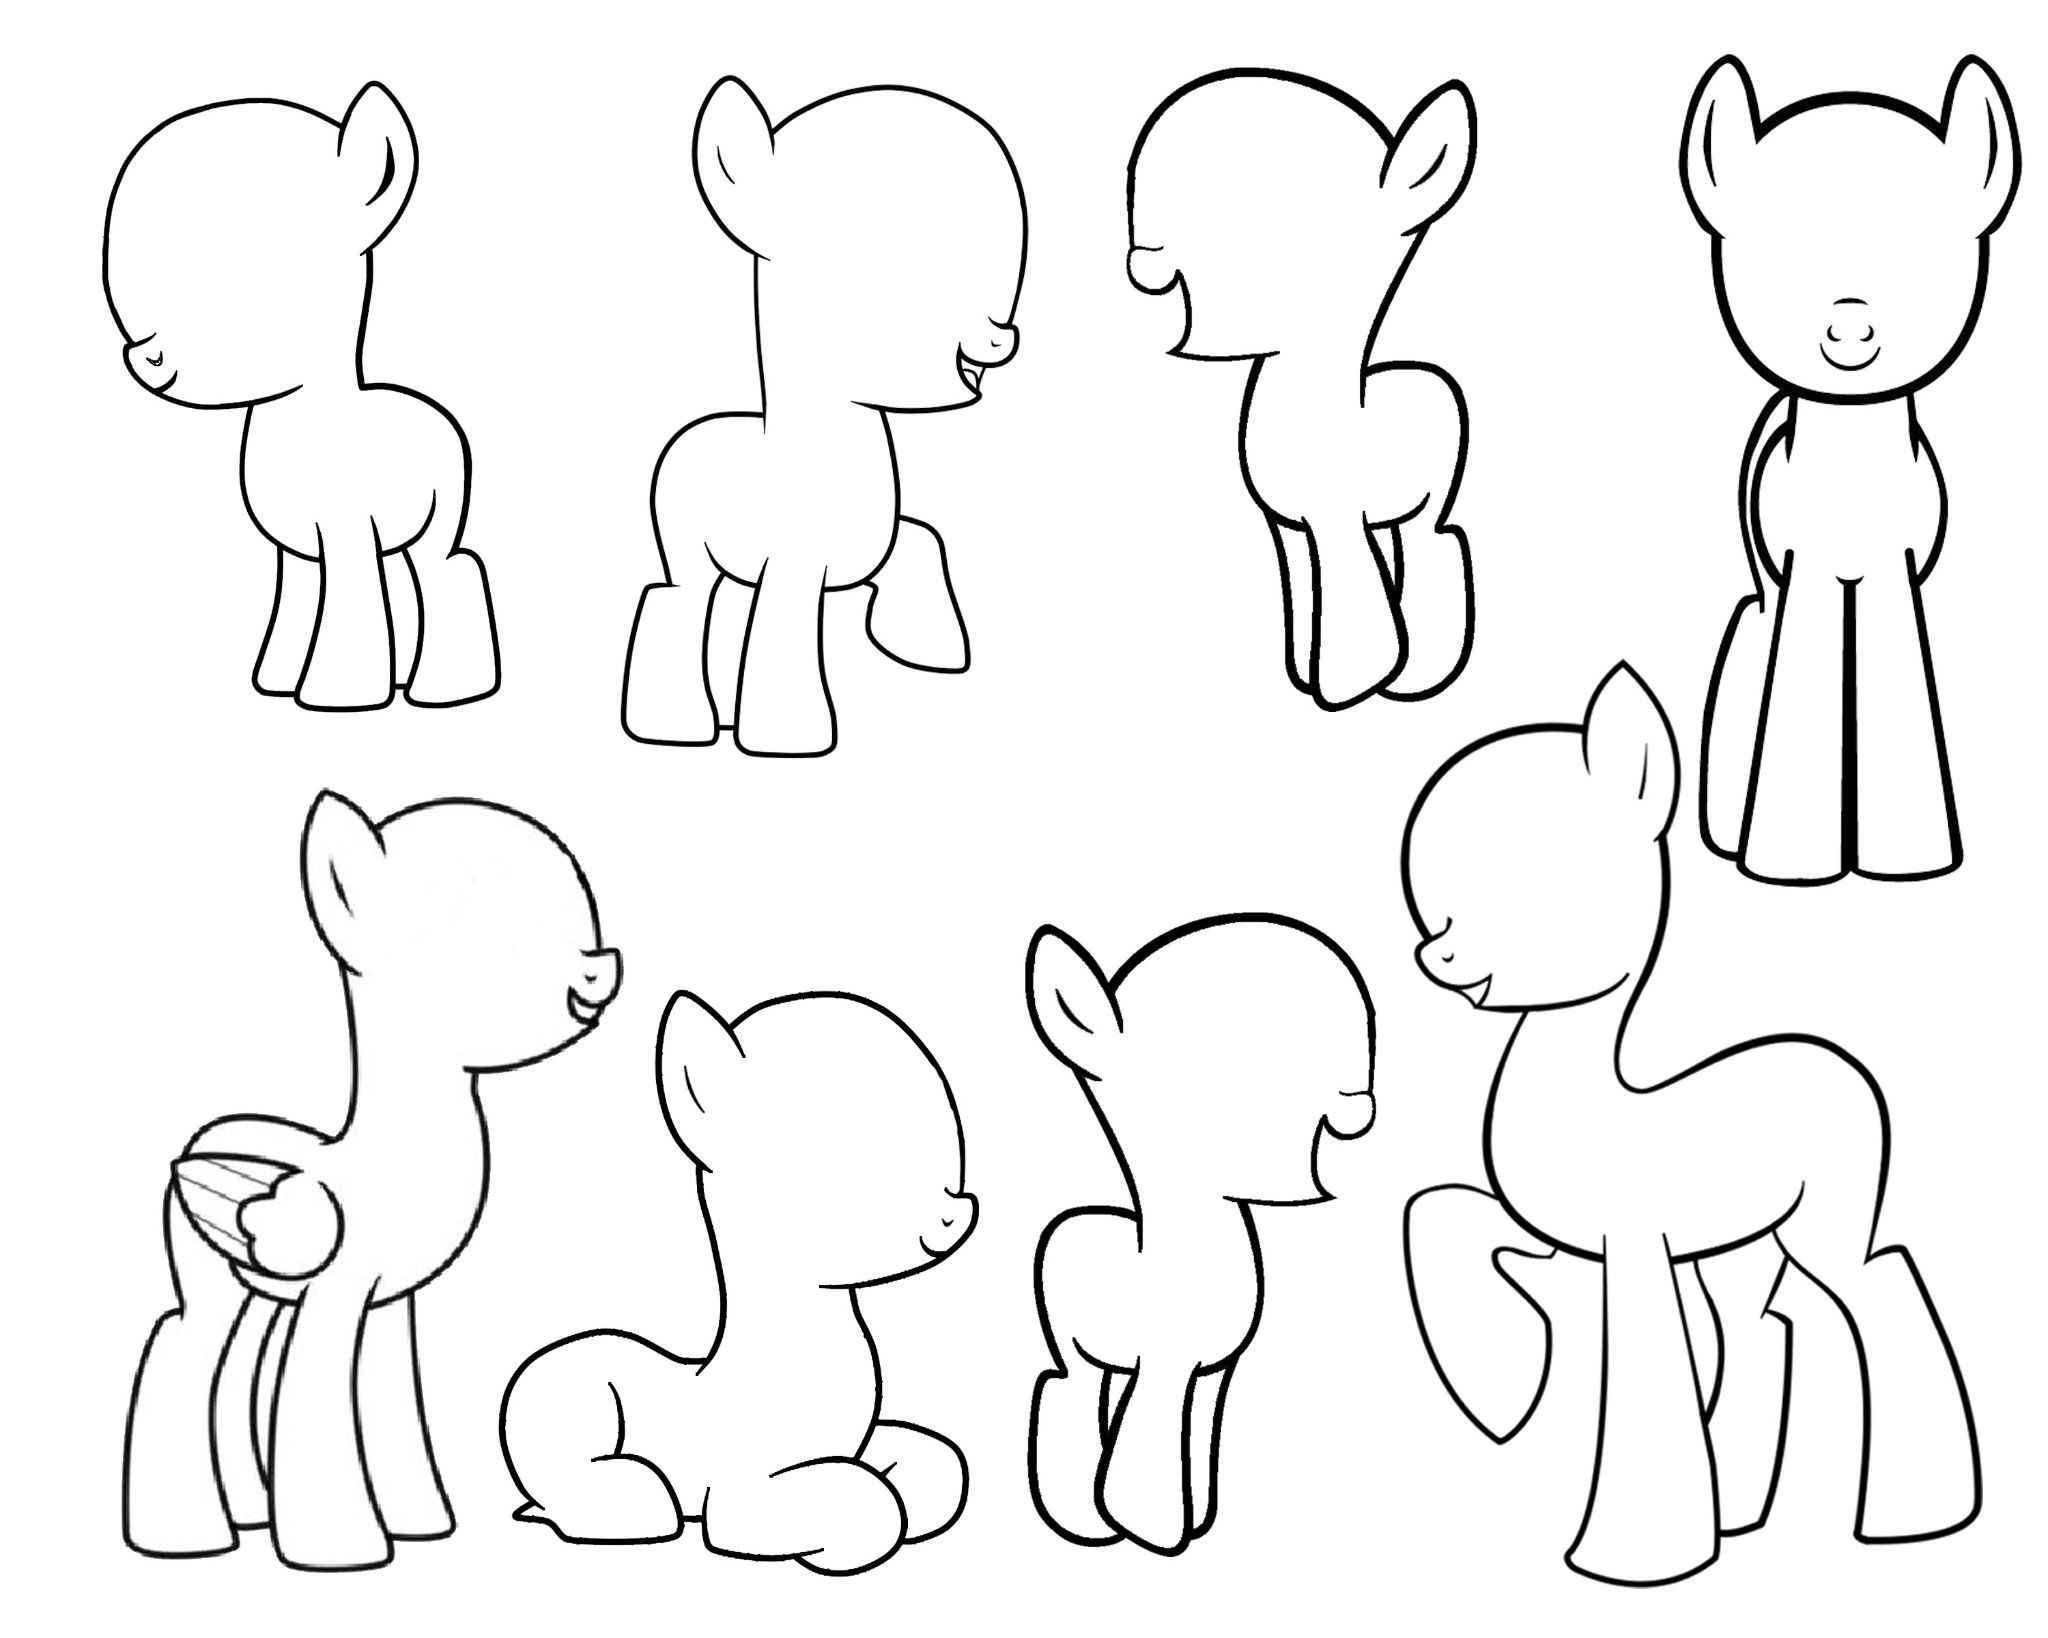 My little pony coloring pages bases - Blank Mlp Bases For Making Your Own Pony Persona